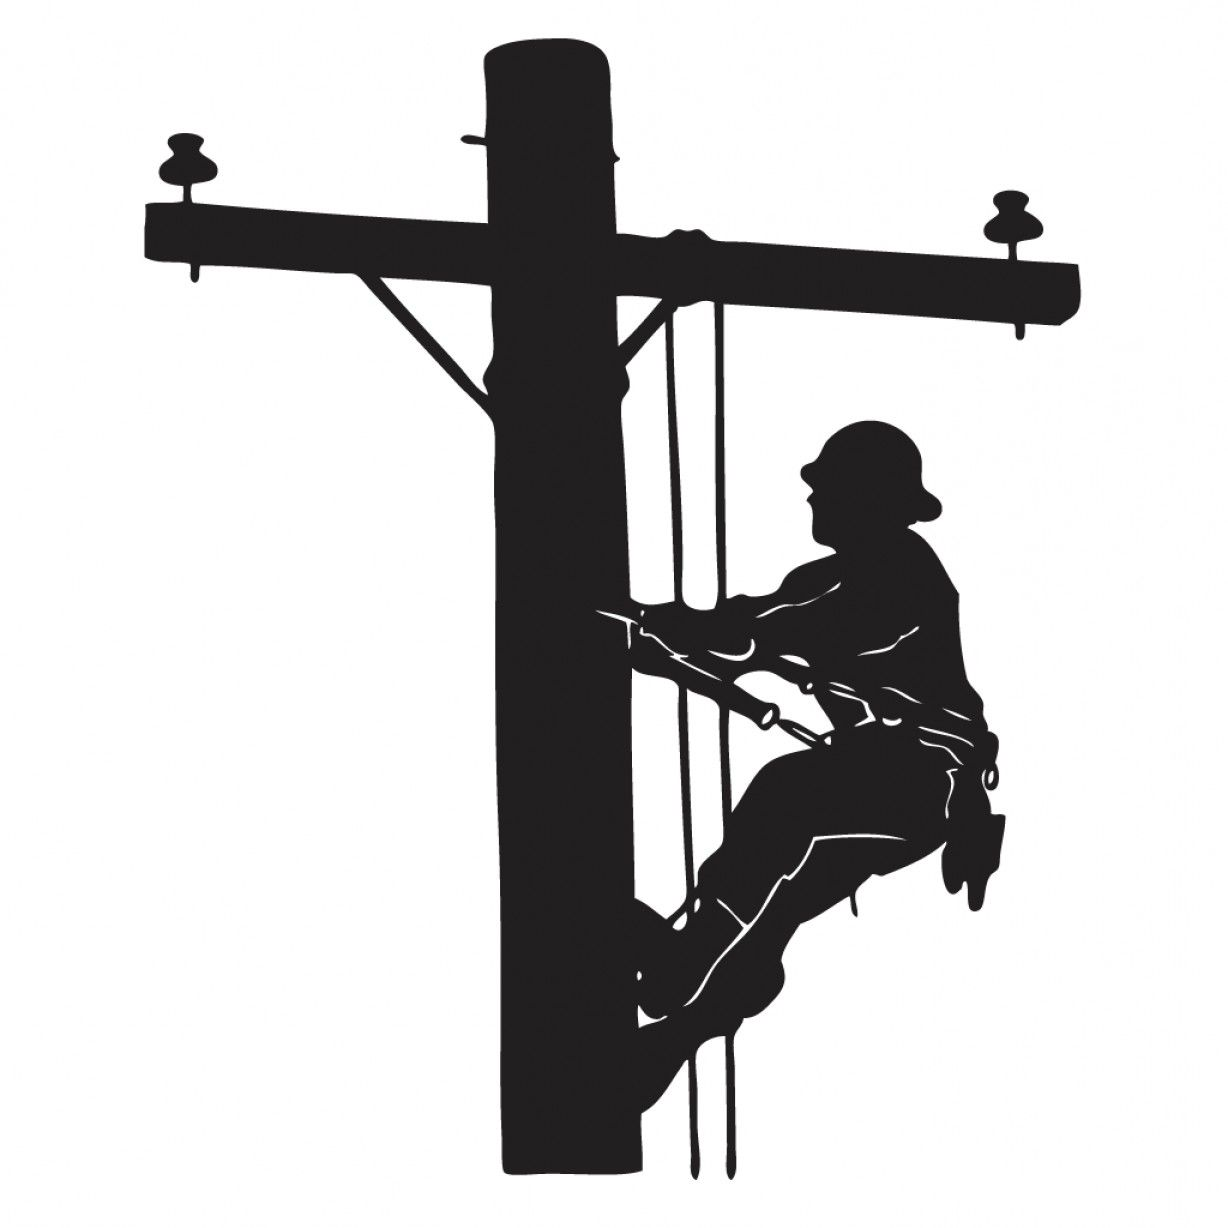 1228x1228 Image Result For Free Download Pictures Of Lineman On Poles